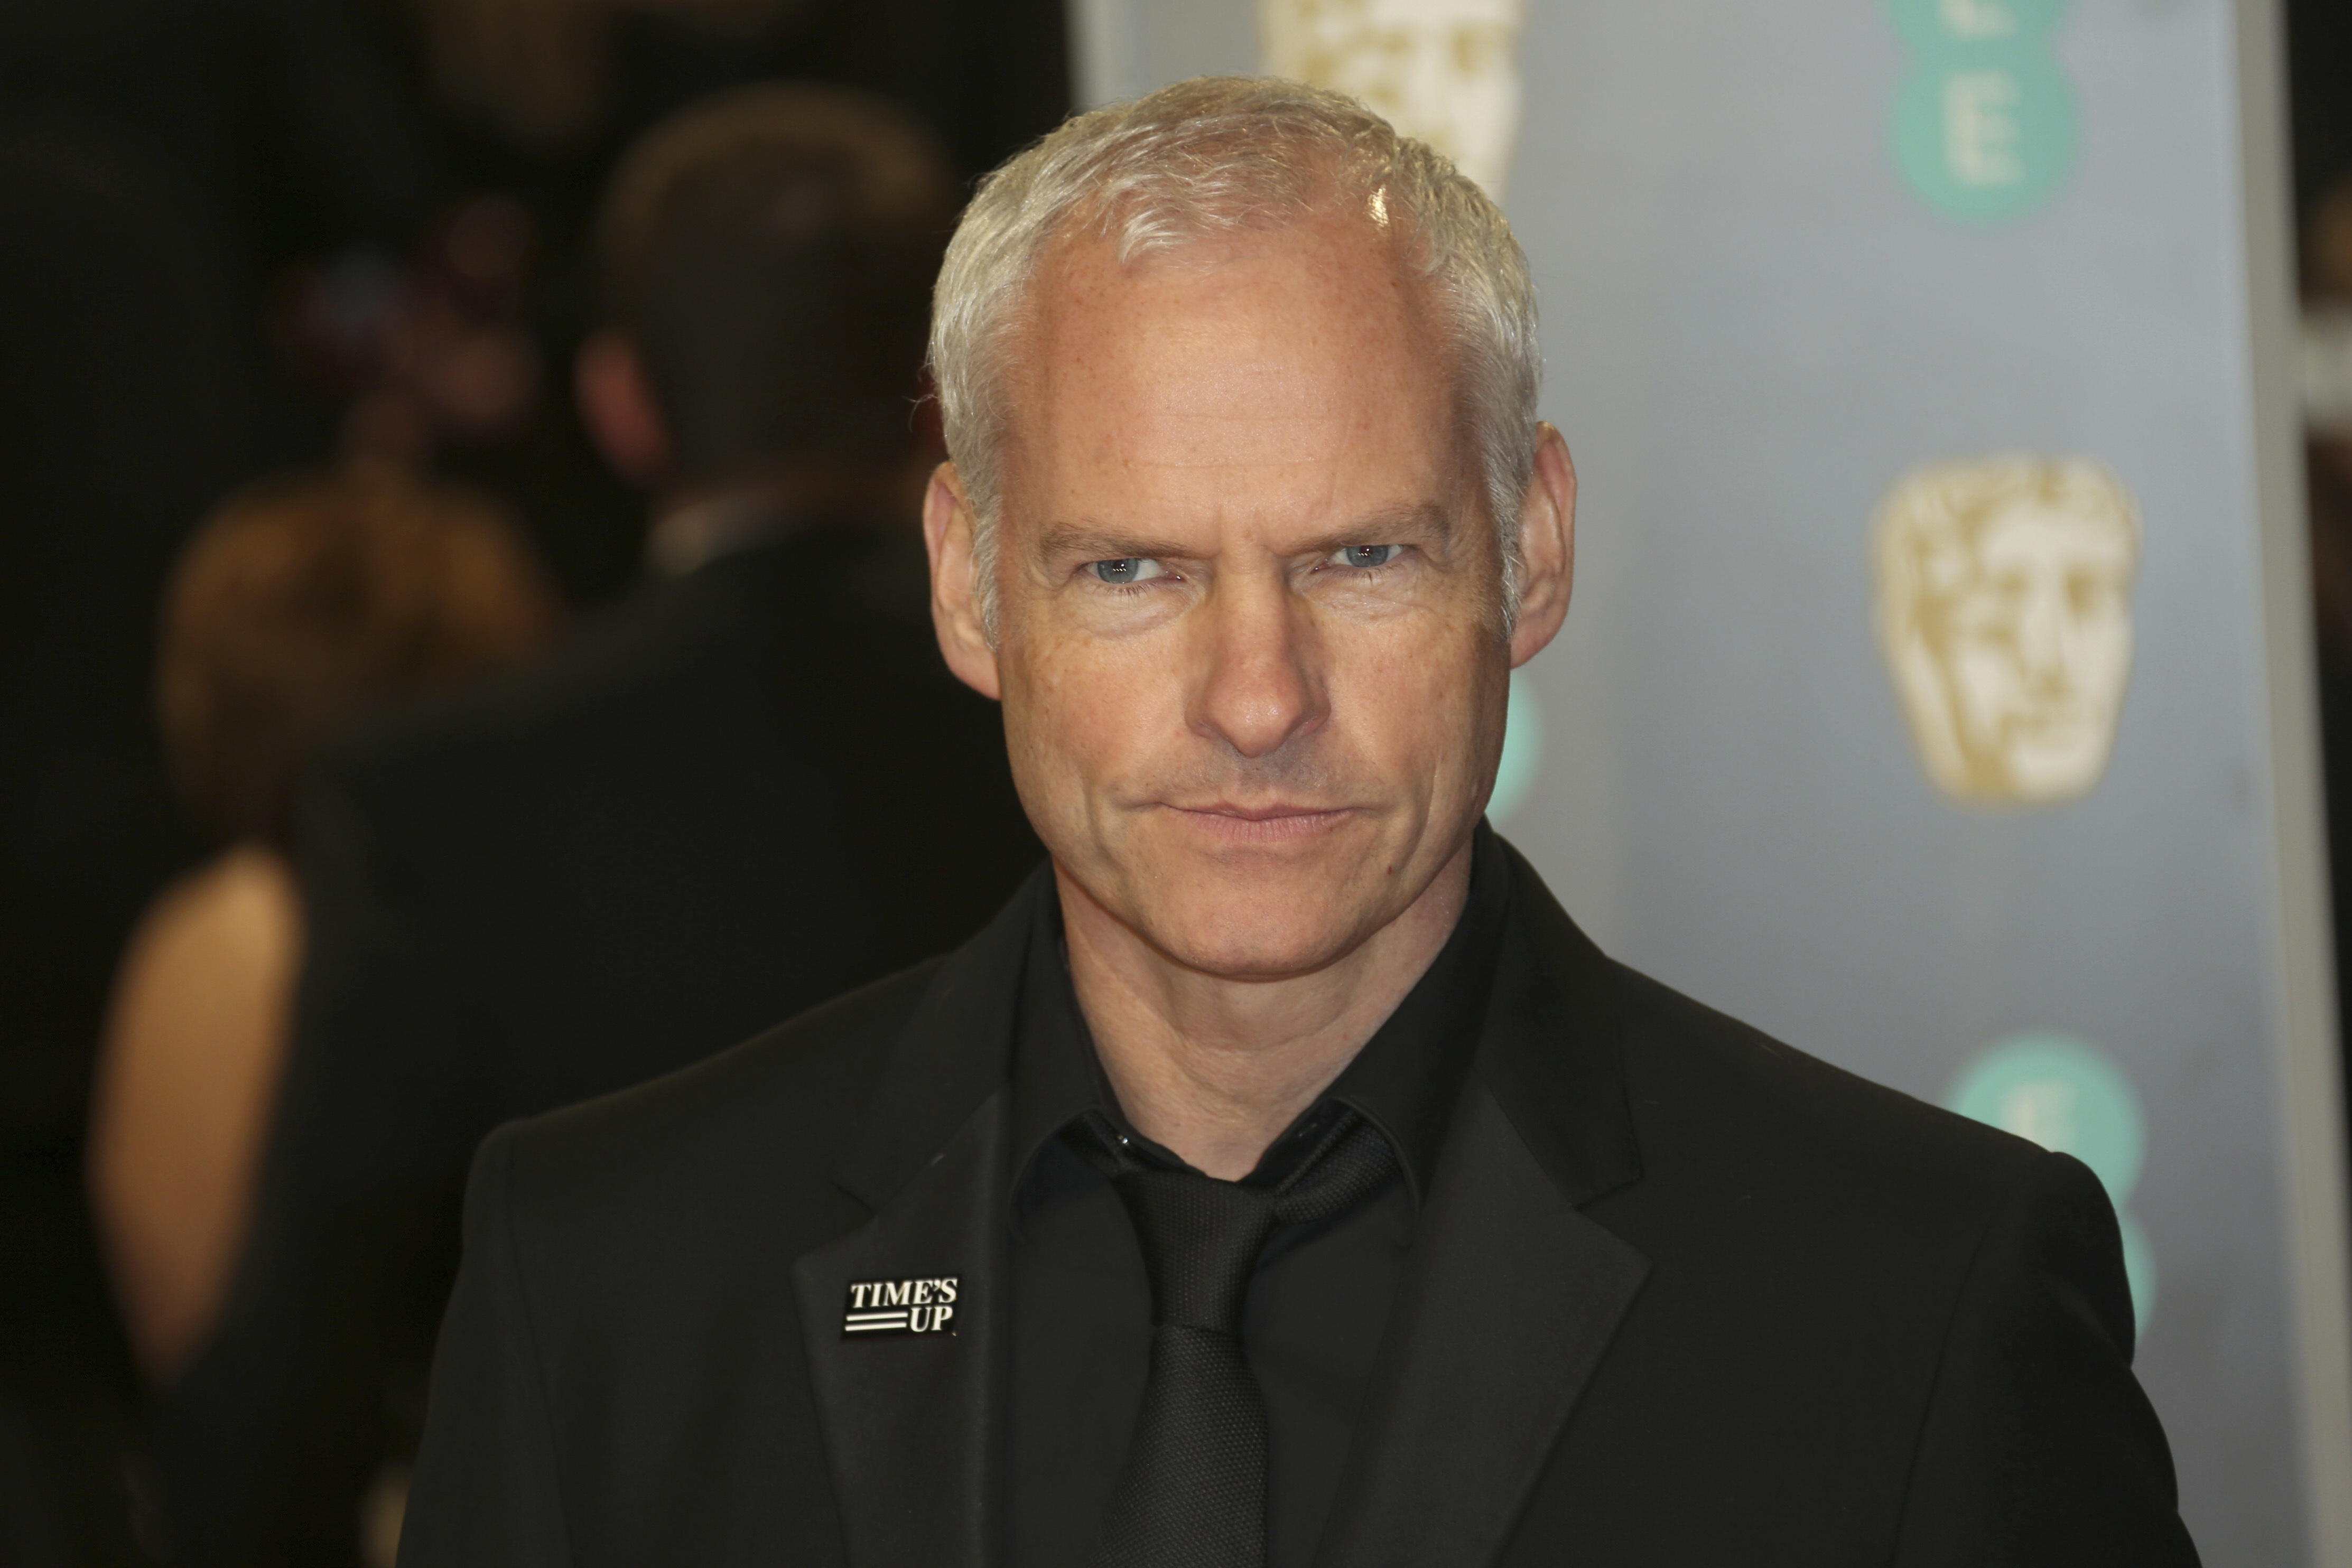 <div class='meta'><div class='origin-logo' data-origin='AP'></div><span class='caption-text' data-credit='Joel C Ryan/Invision/AP'>Director Martin McDonagh poses for photographers upon arrival at the BAFTA 2018 Awards in London, Sunday, Feb. 18, 2018.</span></div>